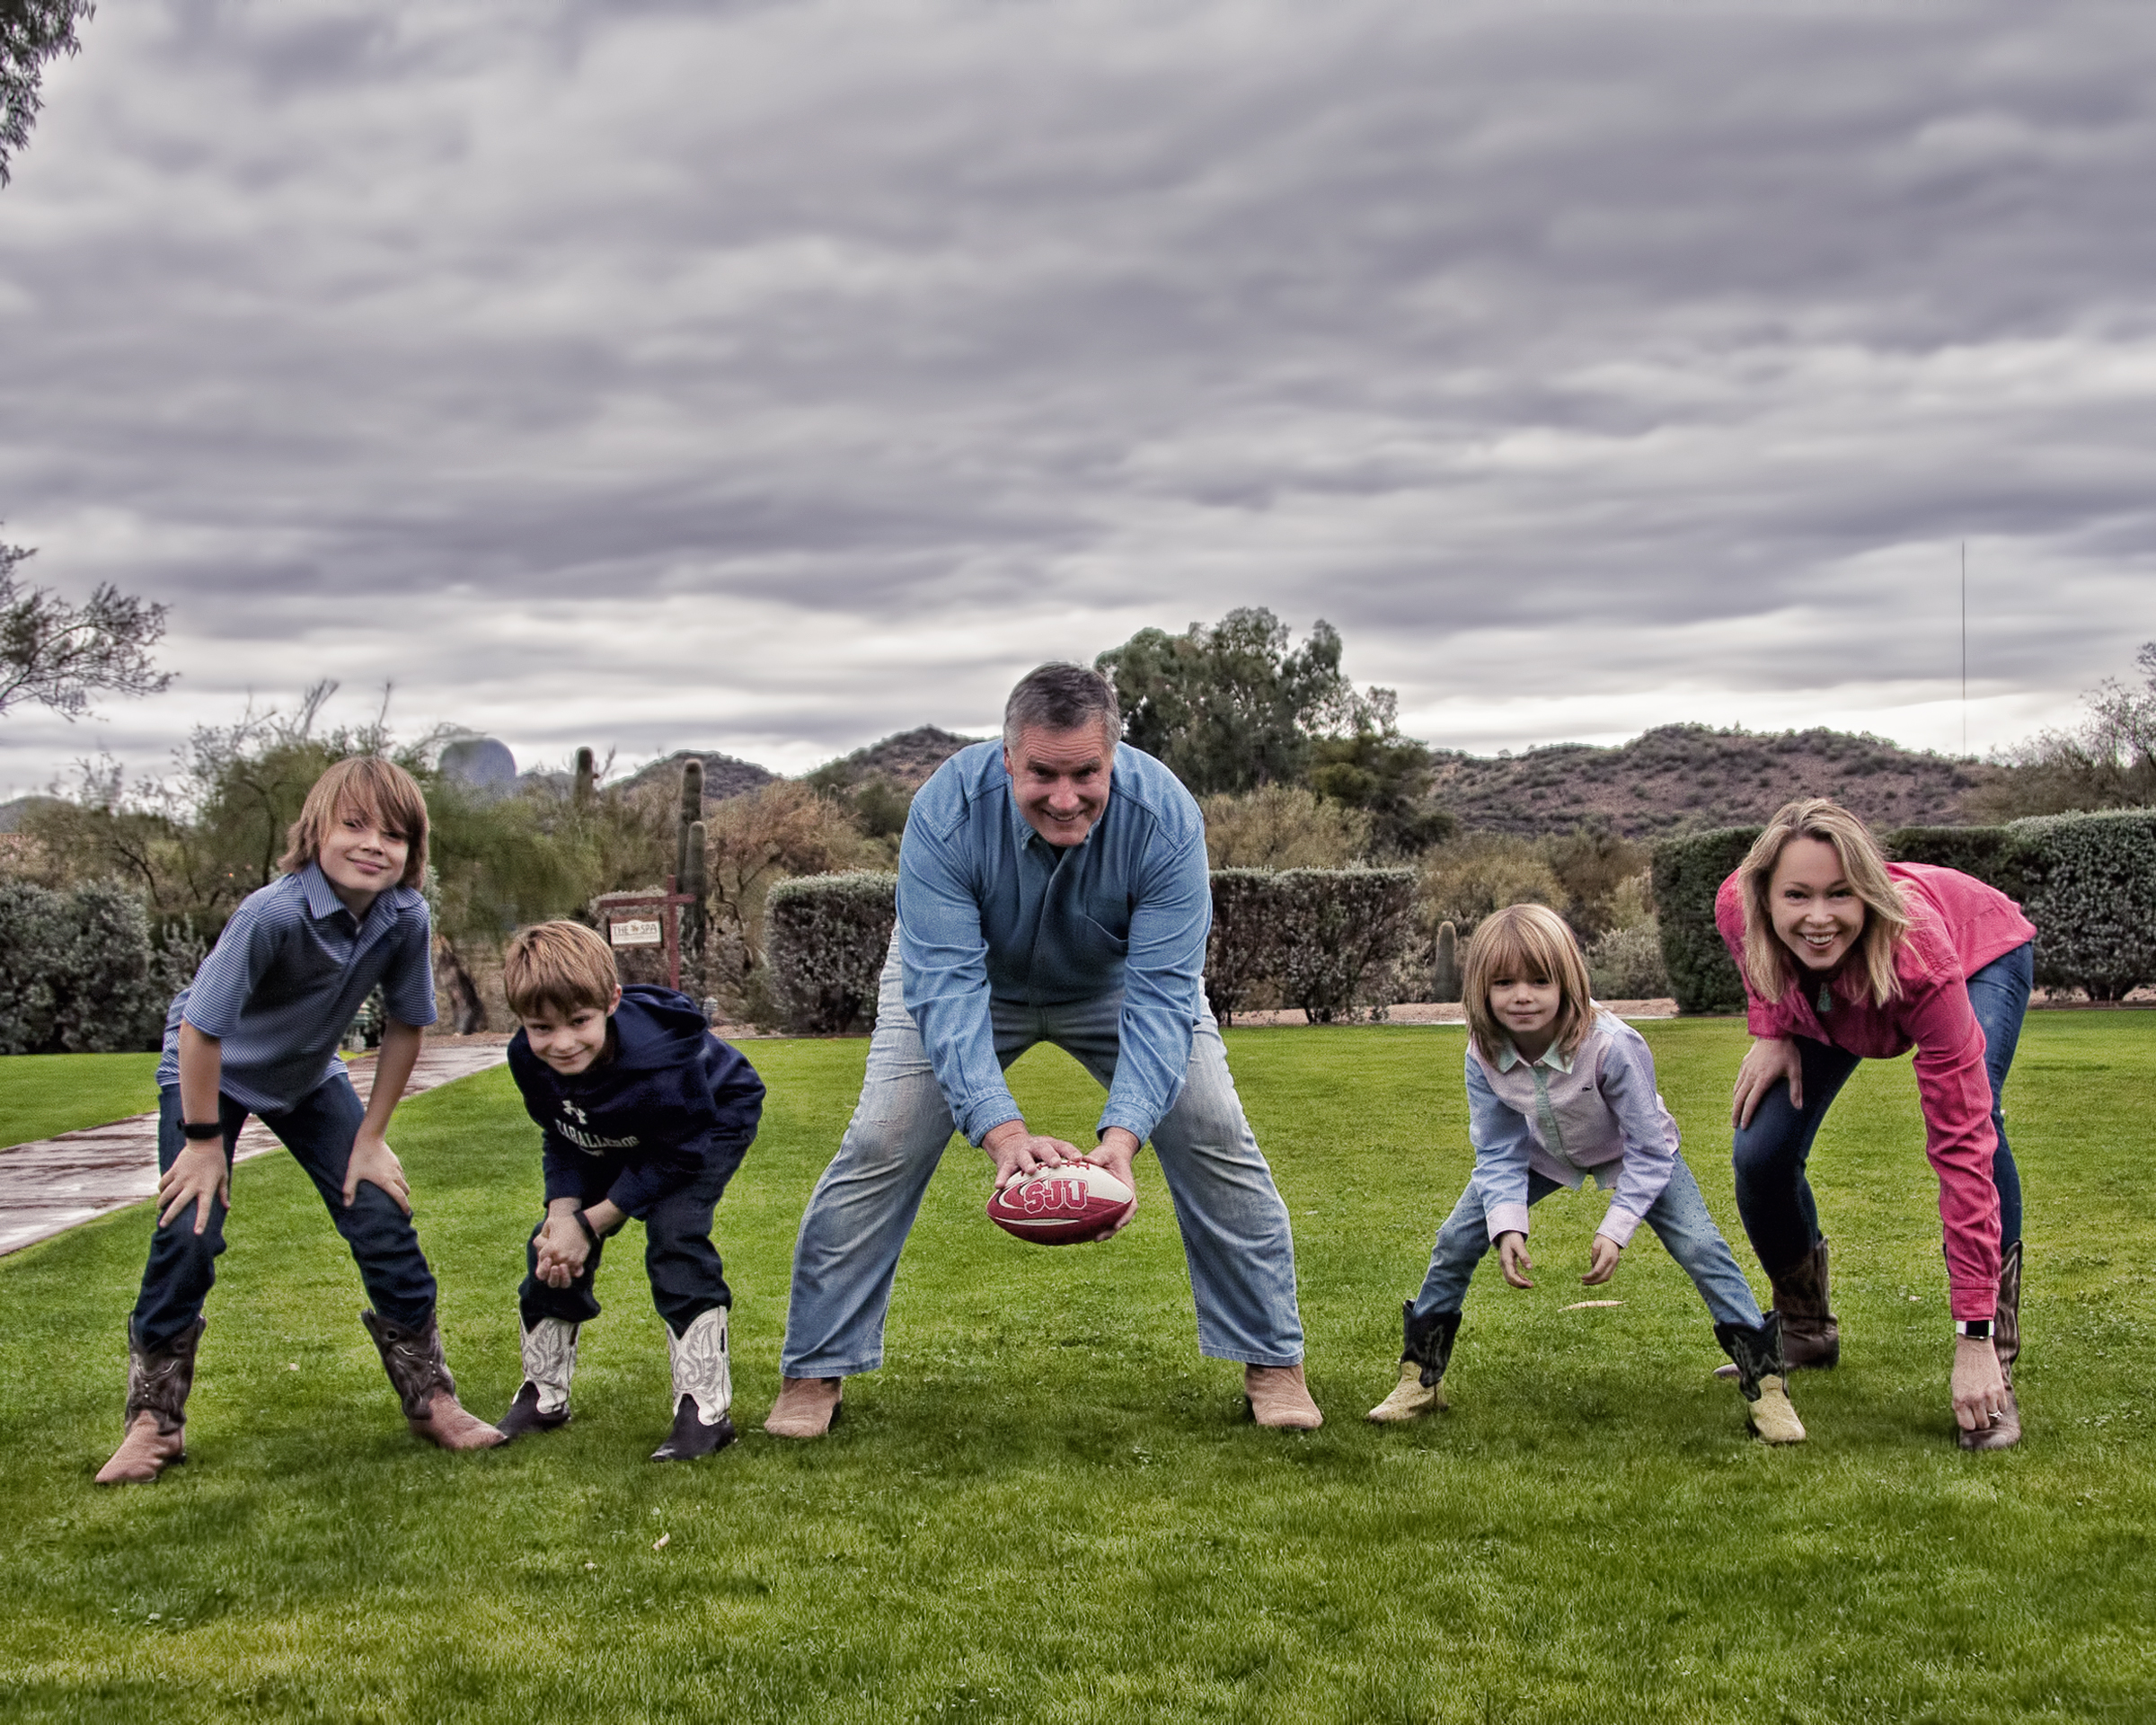 Jon Schwingler (center) and family hunched in football formation